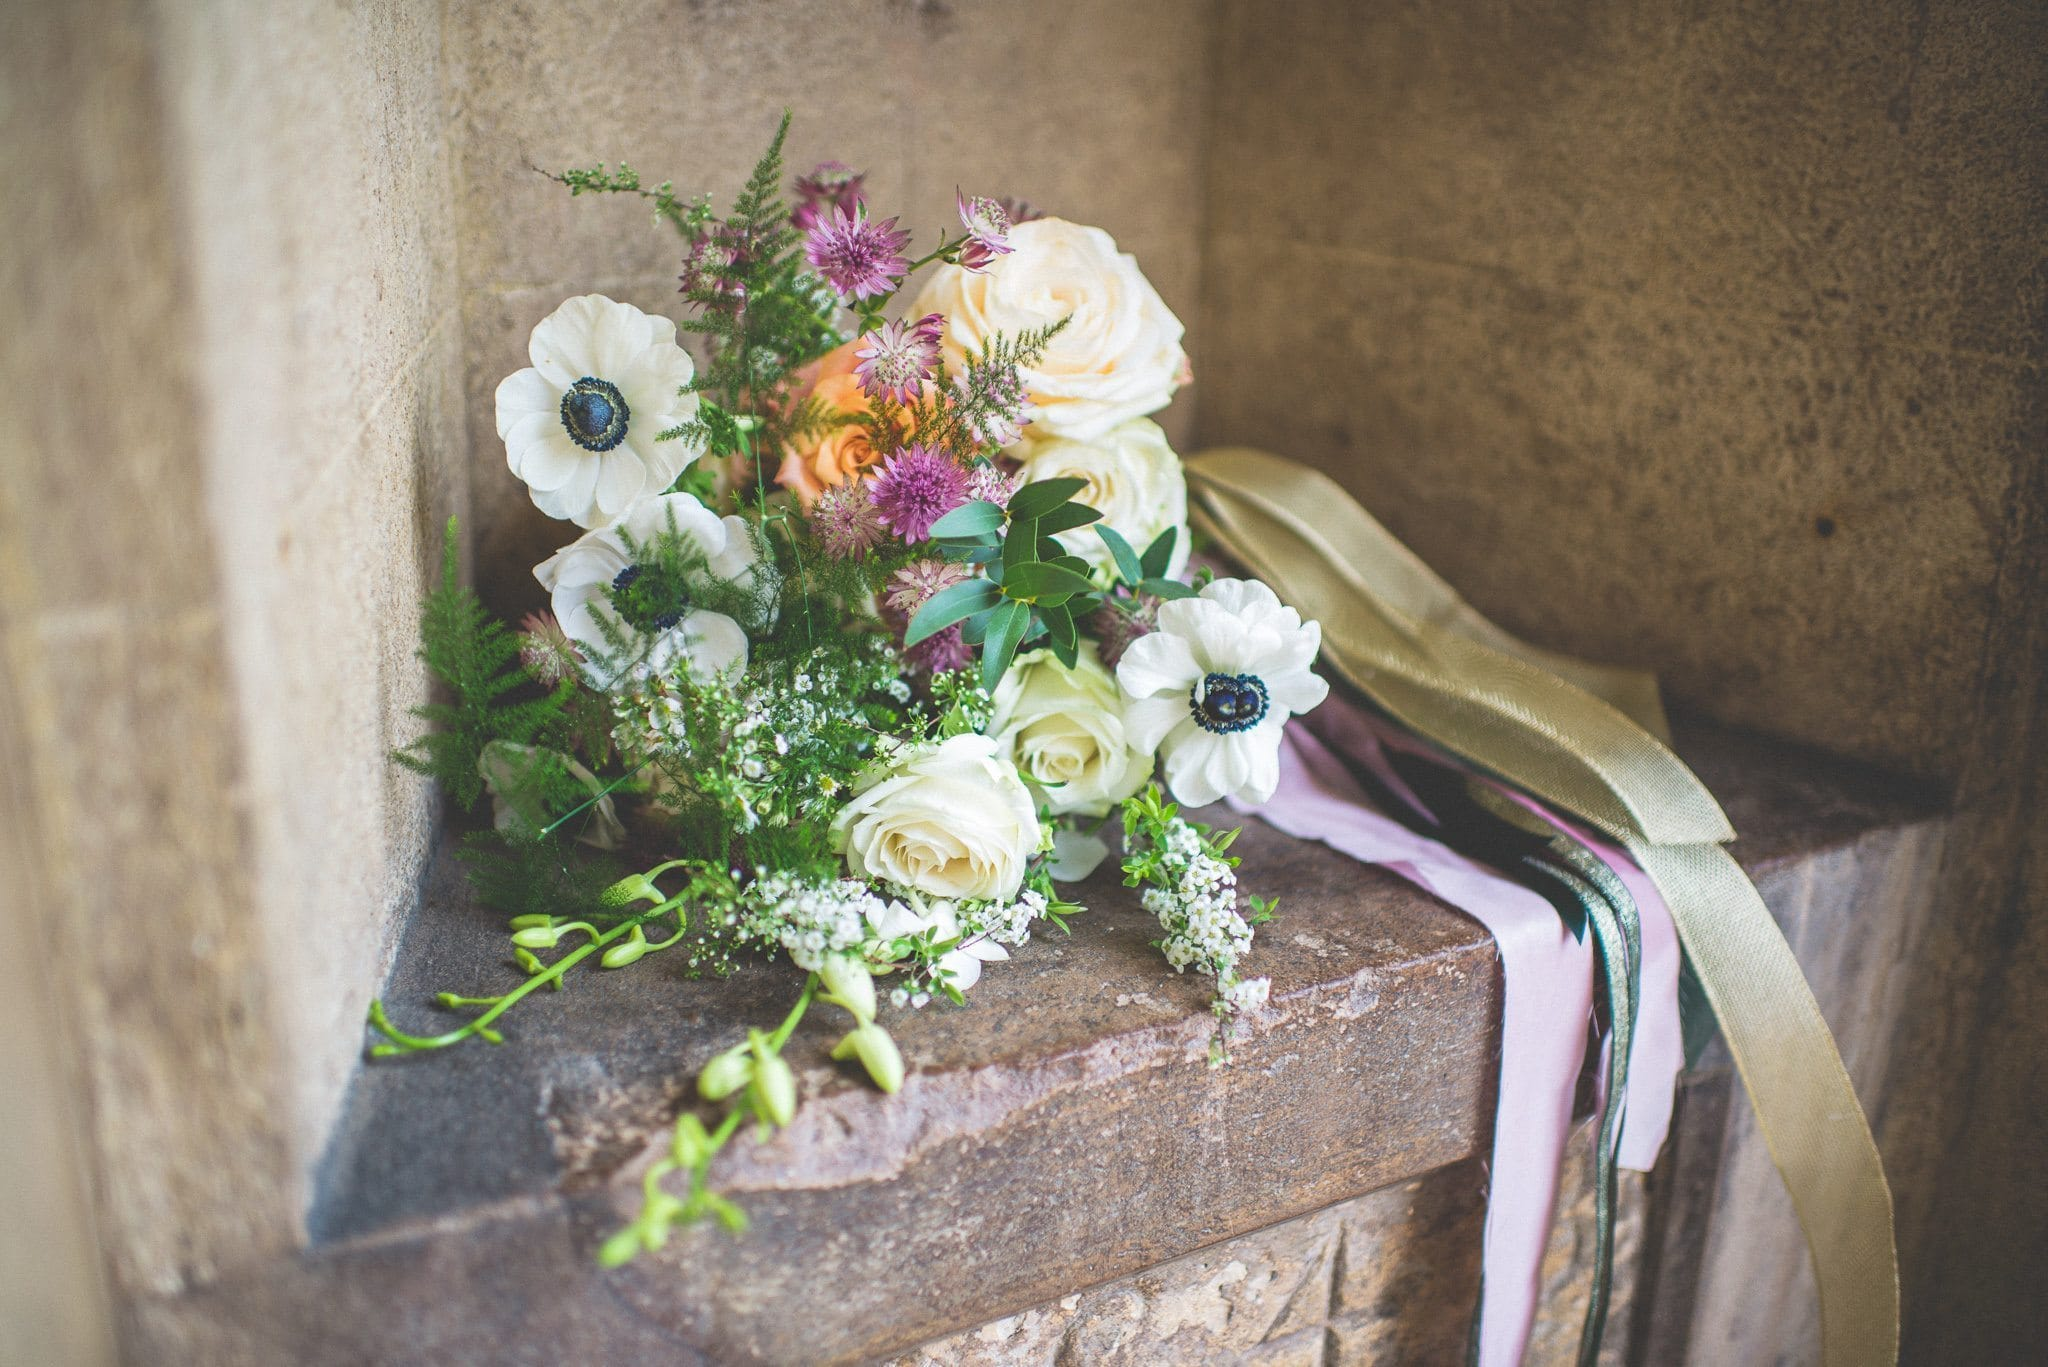 Jasmin's bridal bouquet - featuring anemones and cream and orange roses, and tied with colourful silk ribbon